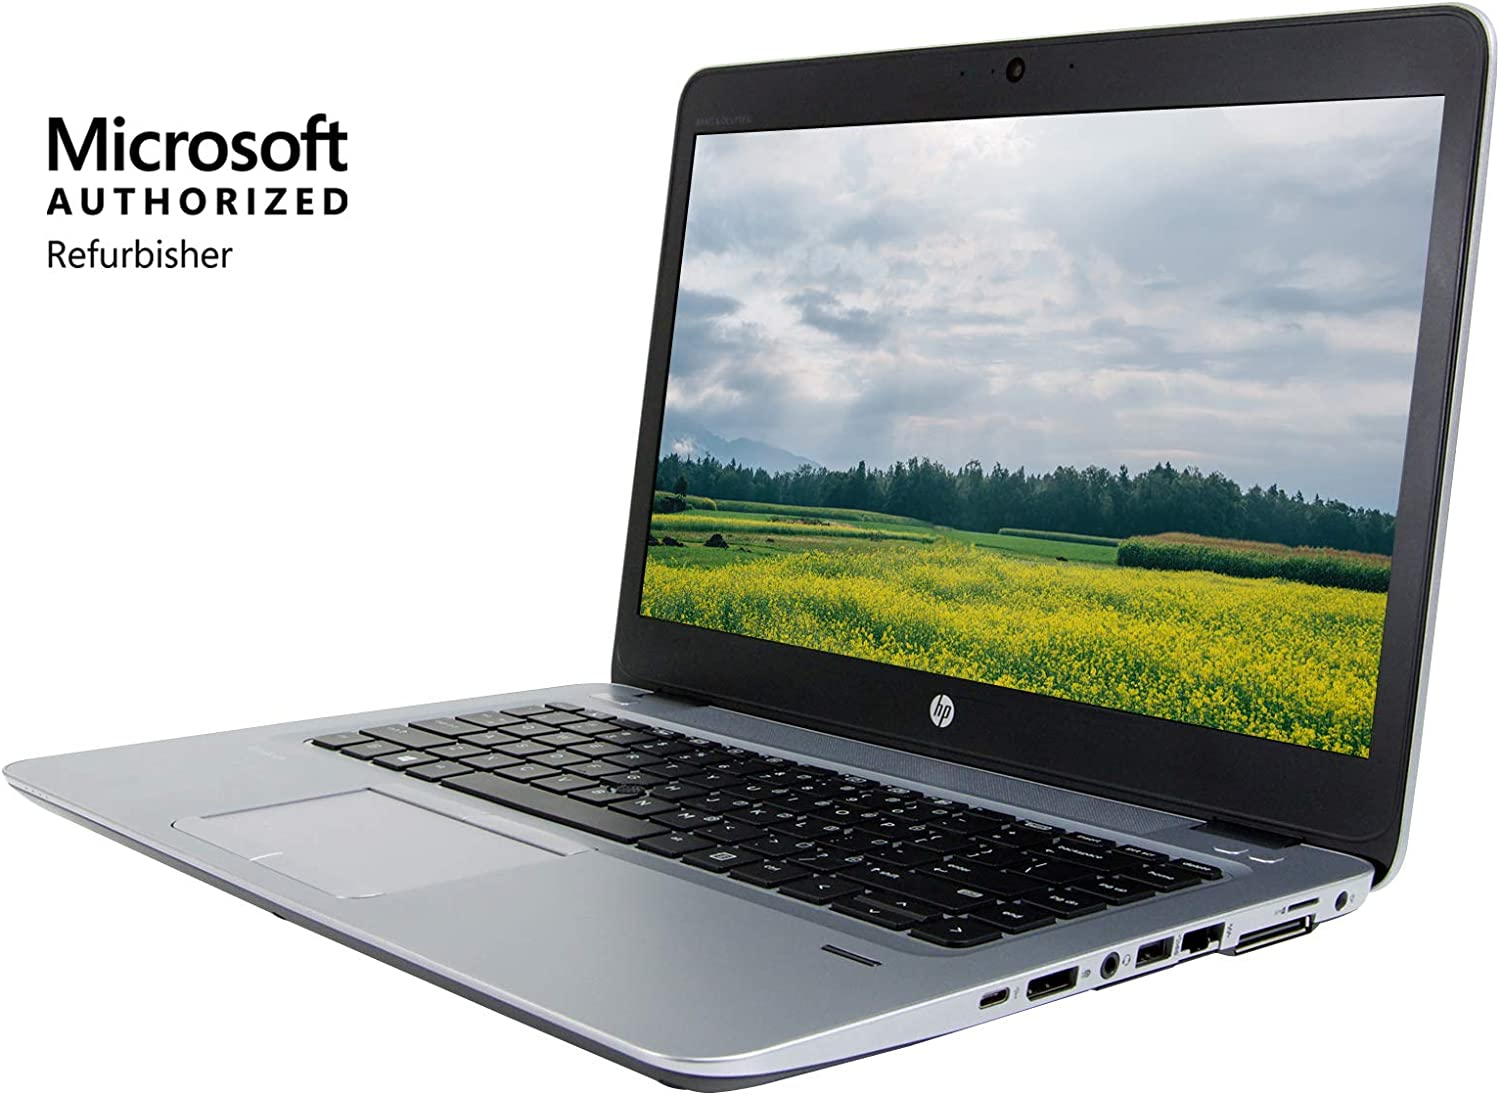 HP EliteBook 840 G4 14 inches Full HD Laptop, Touch Screen, Core i7-7600U 2.8GHz up to 3.9GHz, 16GB RAM, 512GB Solid State Drive, Windows 10 Pro 64Bit, CAM (Renewed)